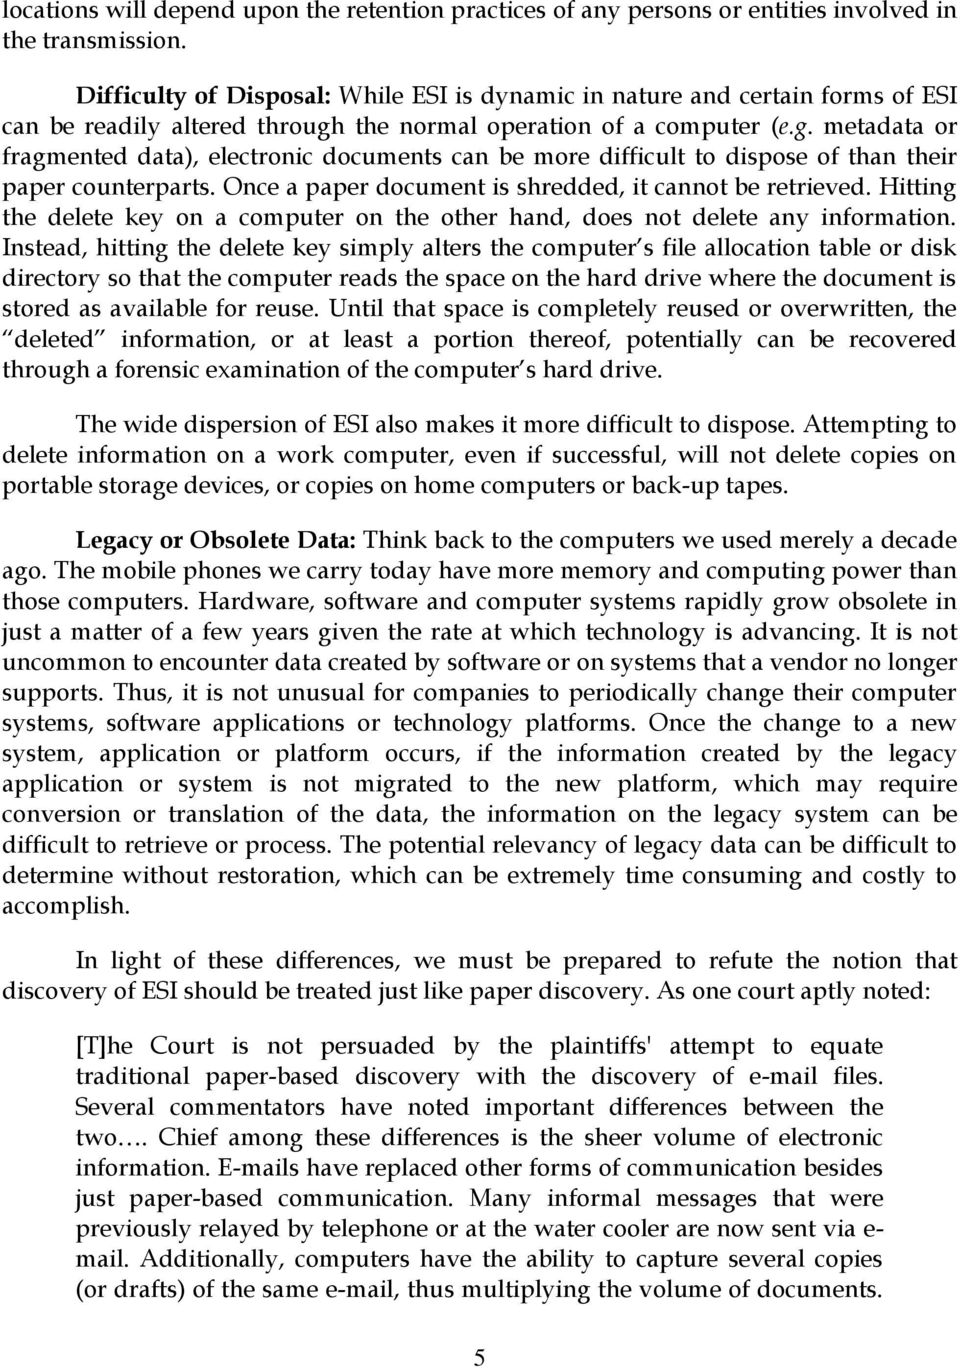 the normal operation of a computer (e.g. metadata or fragmented data), electronic documents can be more difficult to dispose of than their paper counterparts.